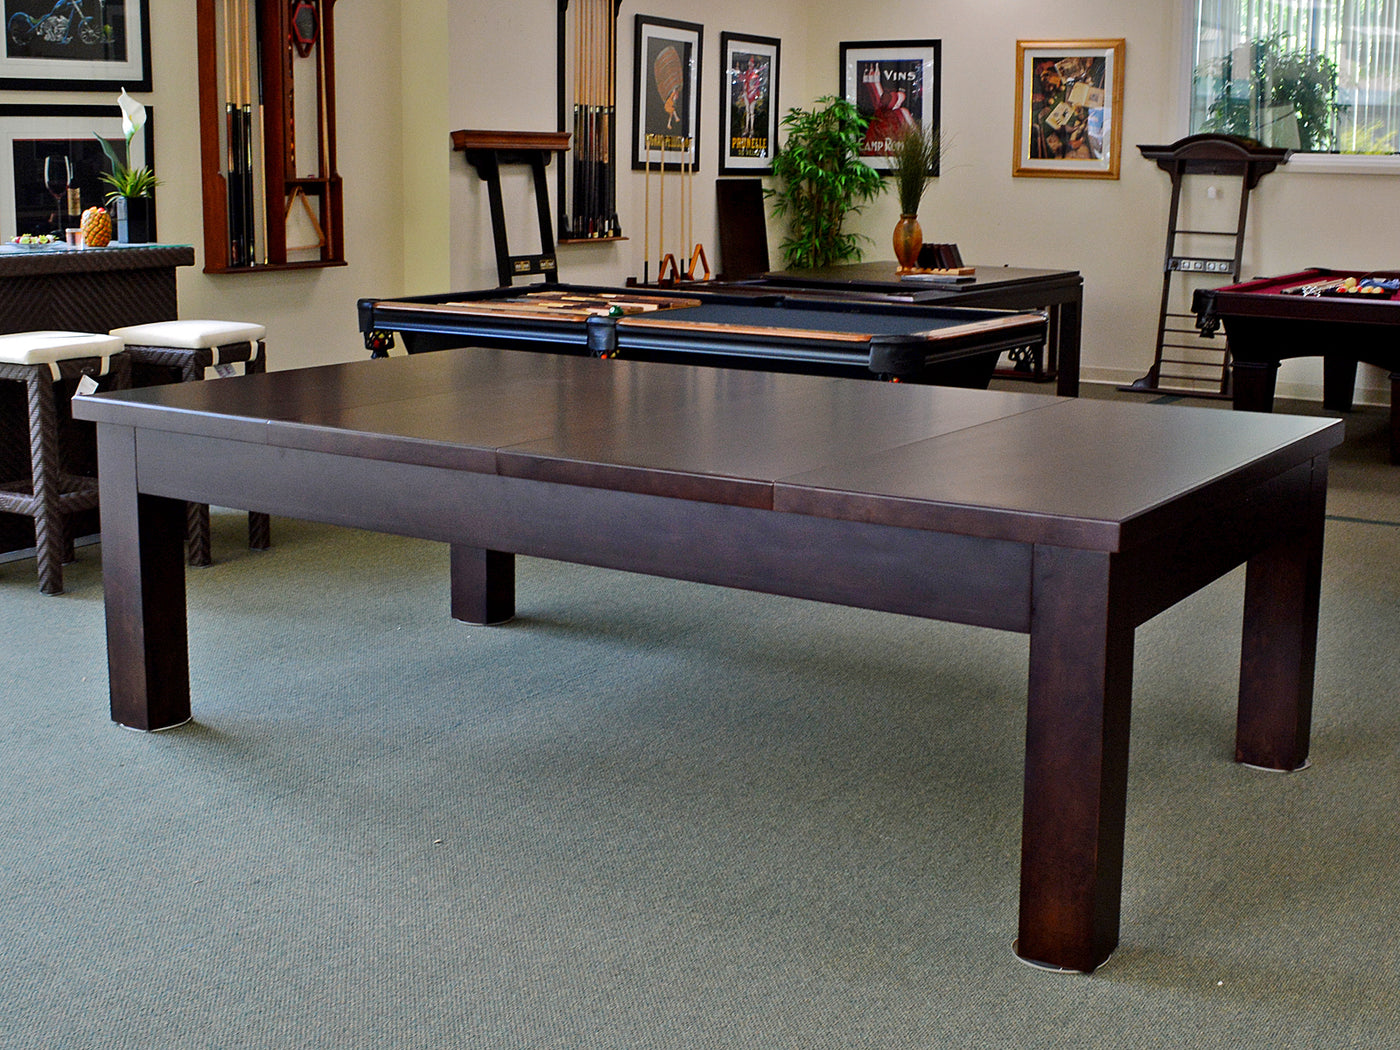 Charmant ... Dining Pool Table Top ...